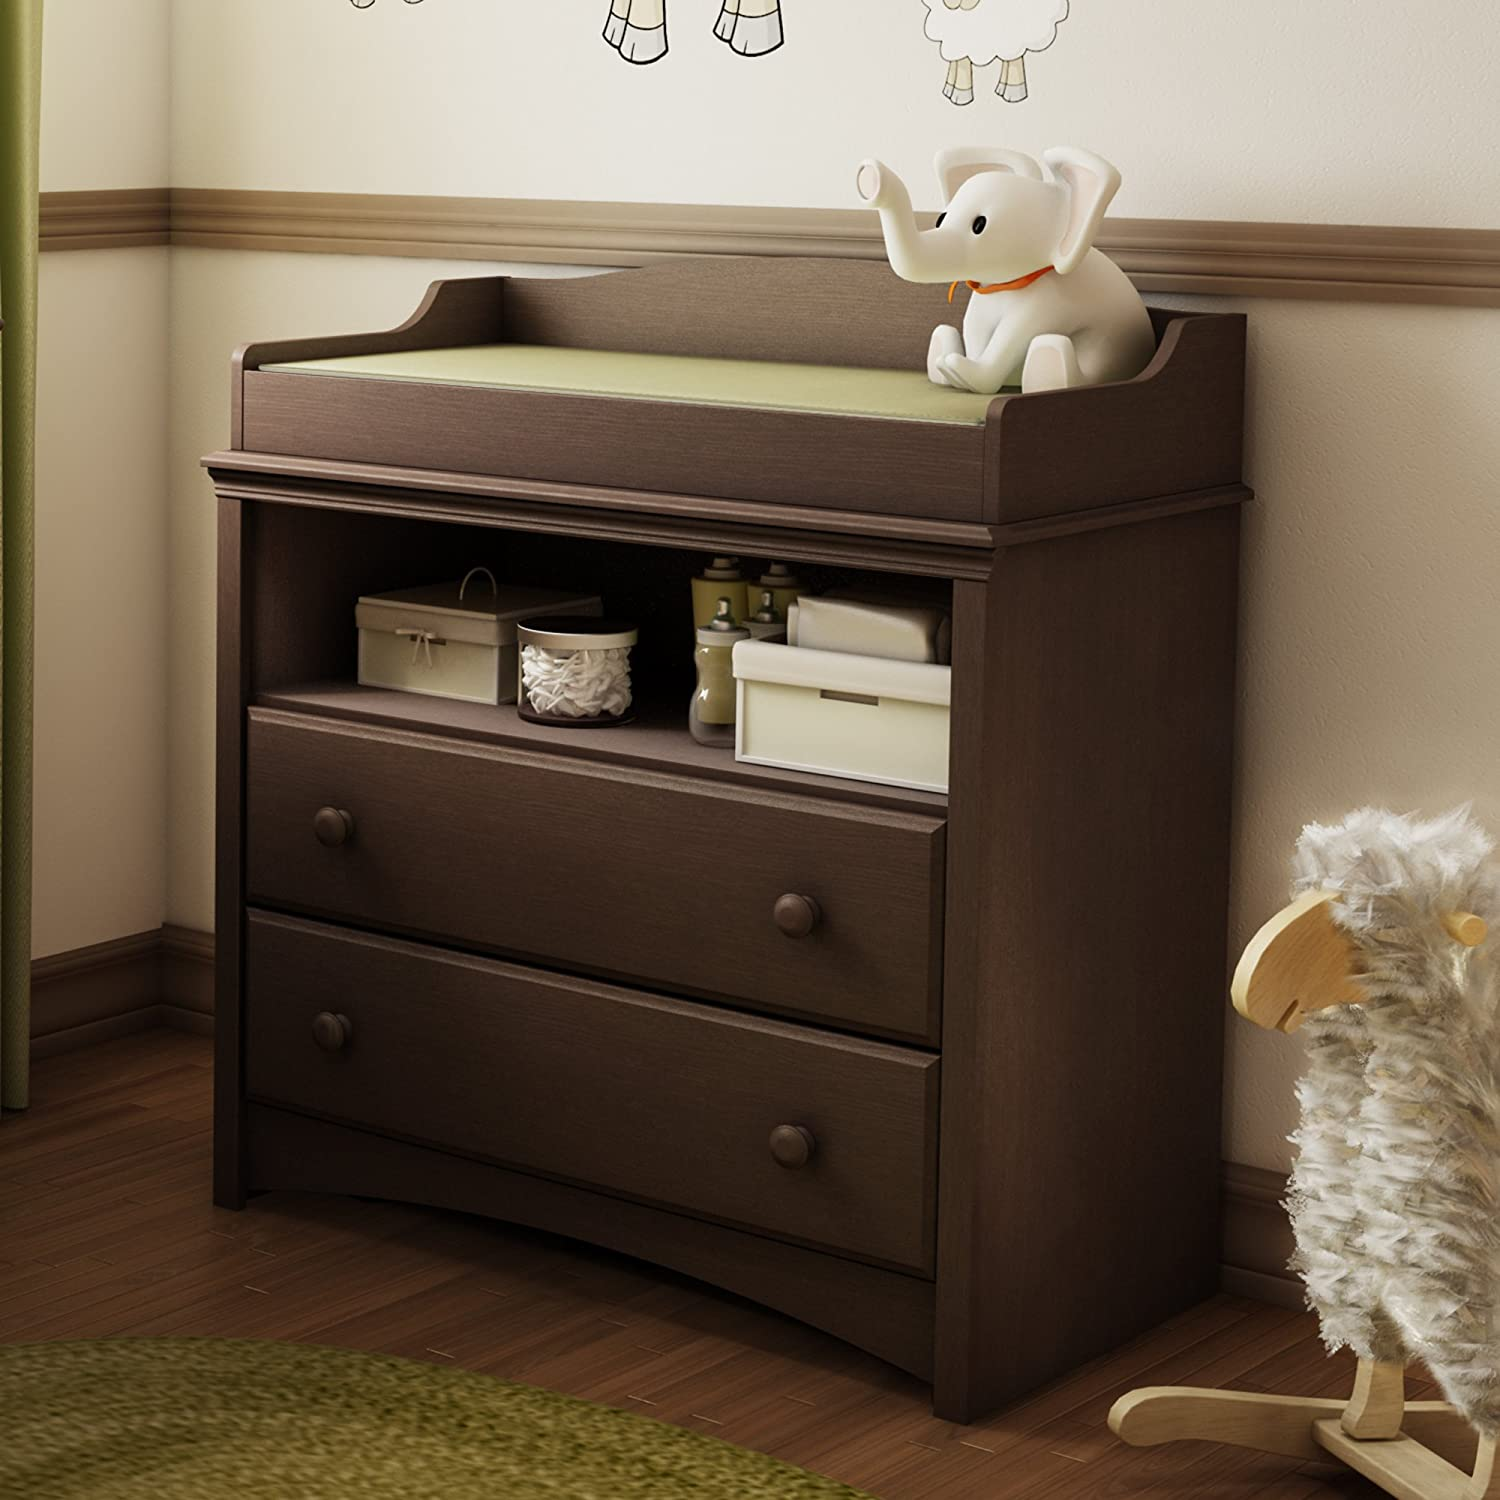 Merveilleux Amazon.com: South Shore Angel Changing Table   Espresso With Wooden Knobs:  Kitchen U0026 Dining